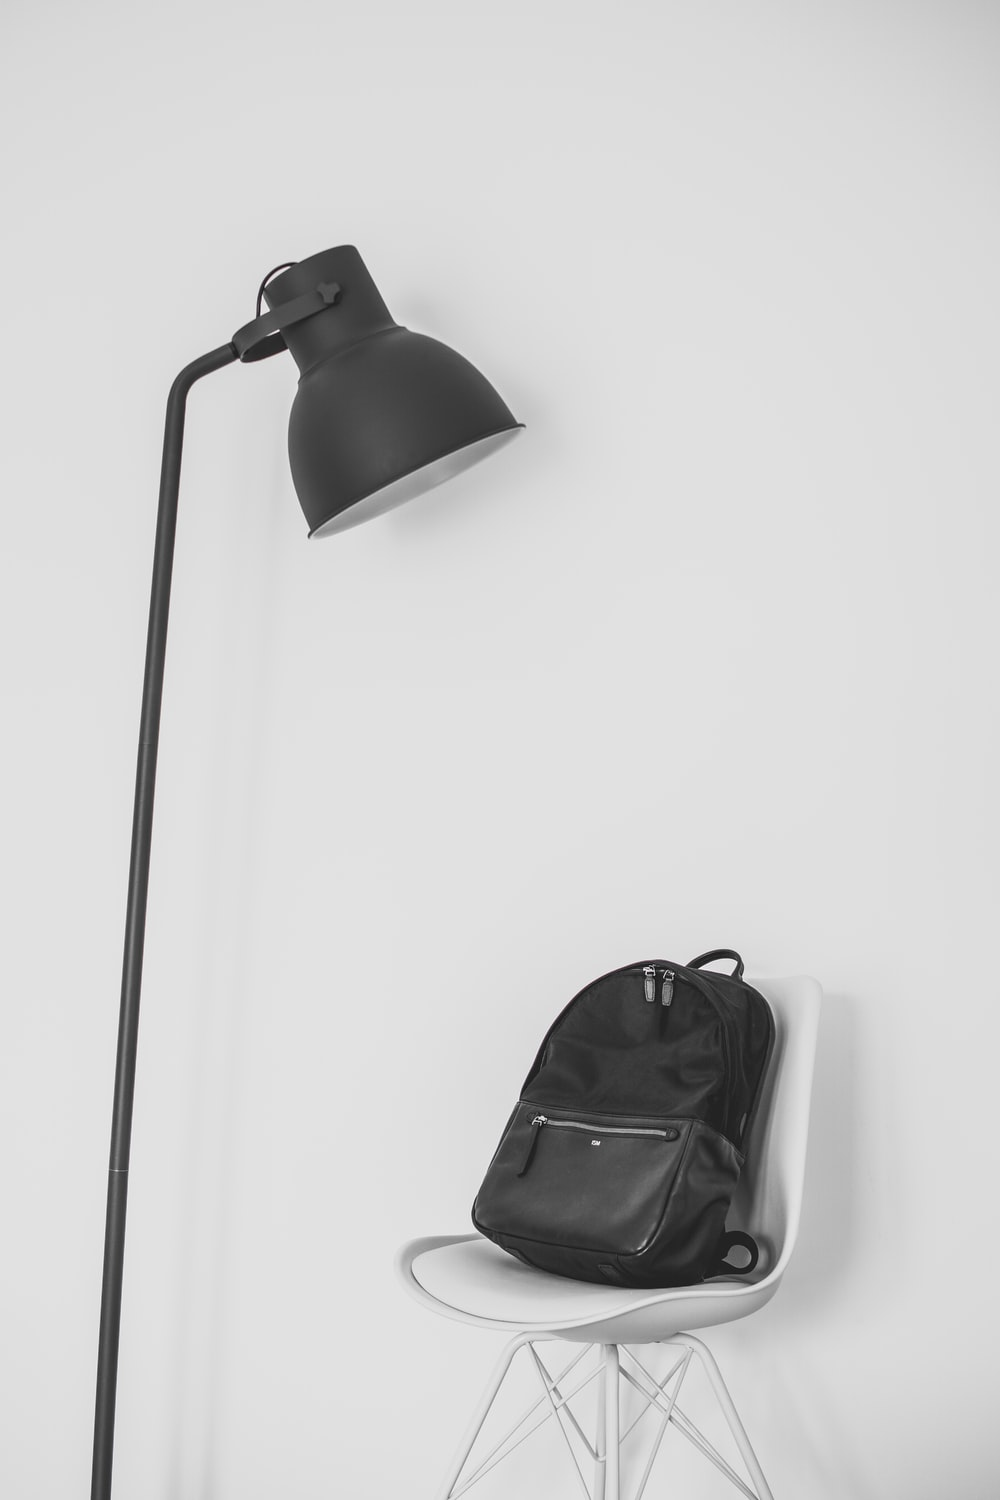 black lamp beside backpack on top of chair